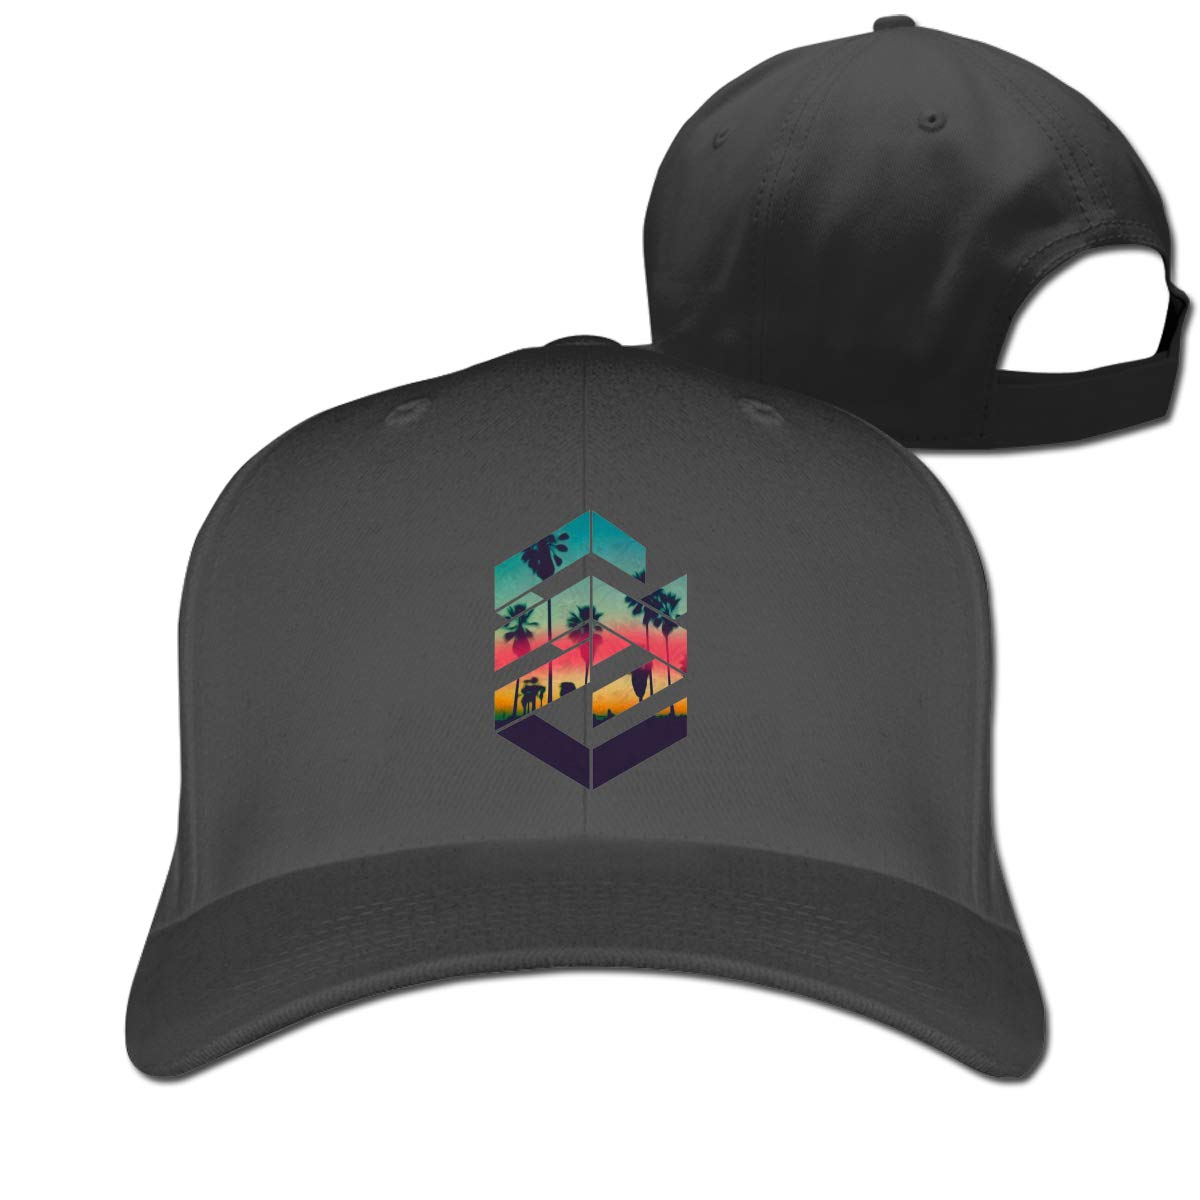 Geometric Sunset Beach Fashion Adjustable Cotton Baseball Caps Trucker Driver Hat Outdoor Cap Black